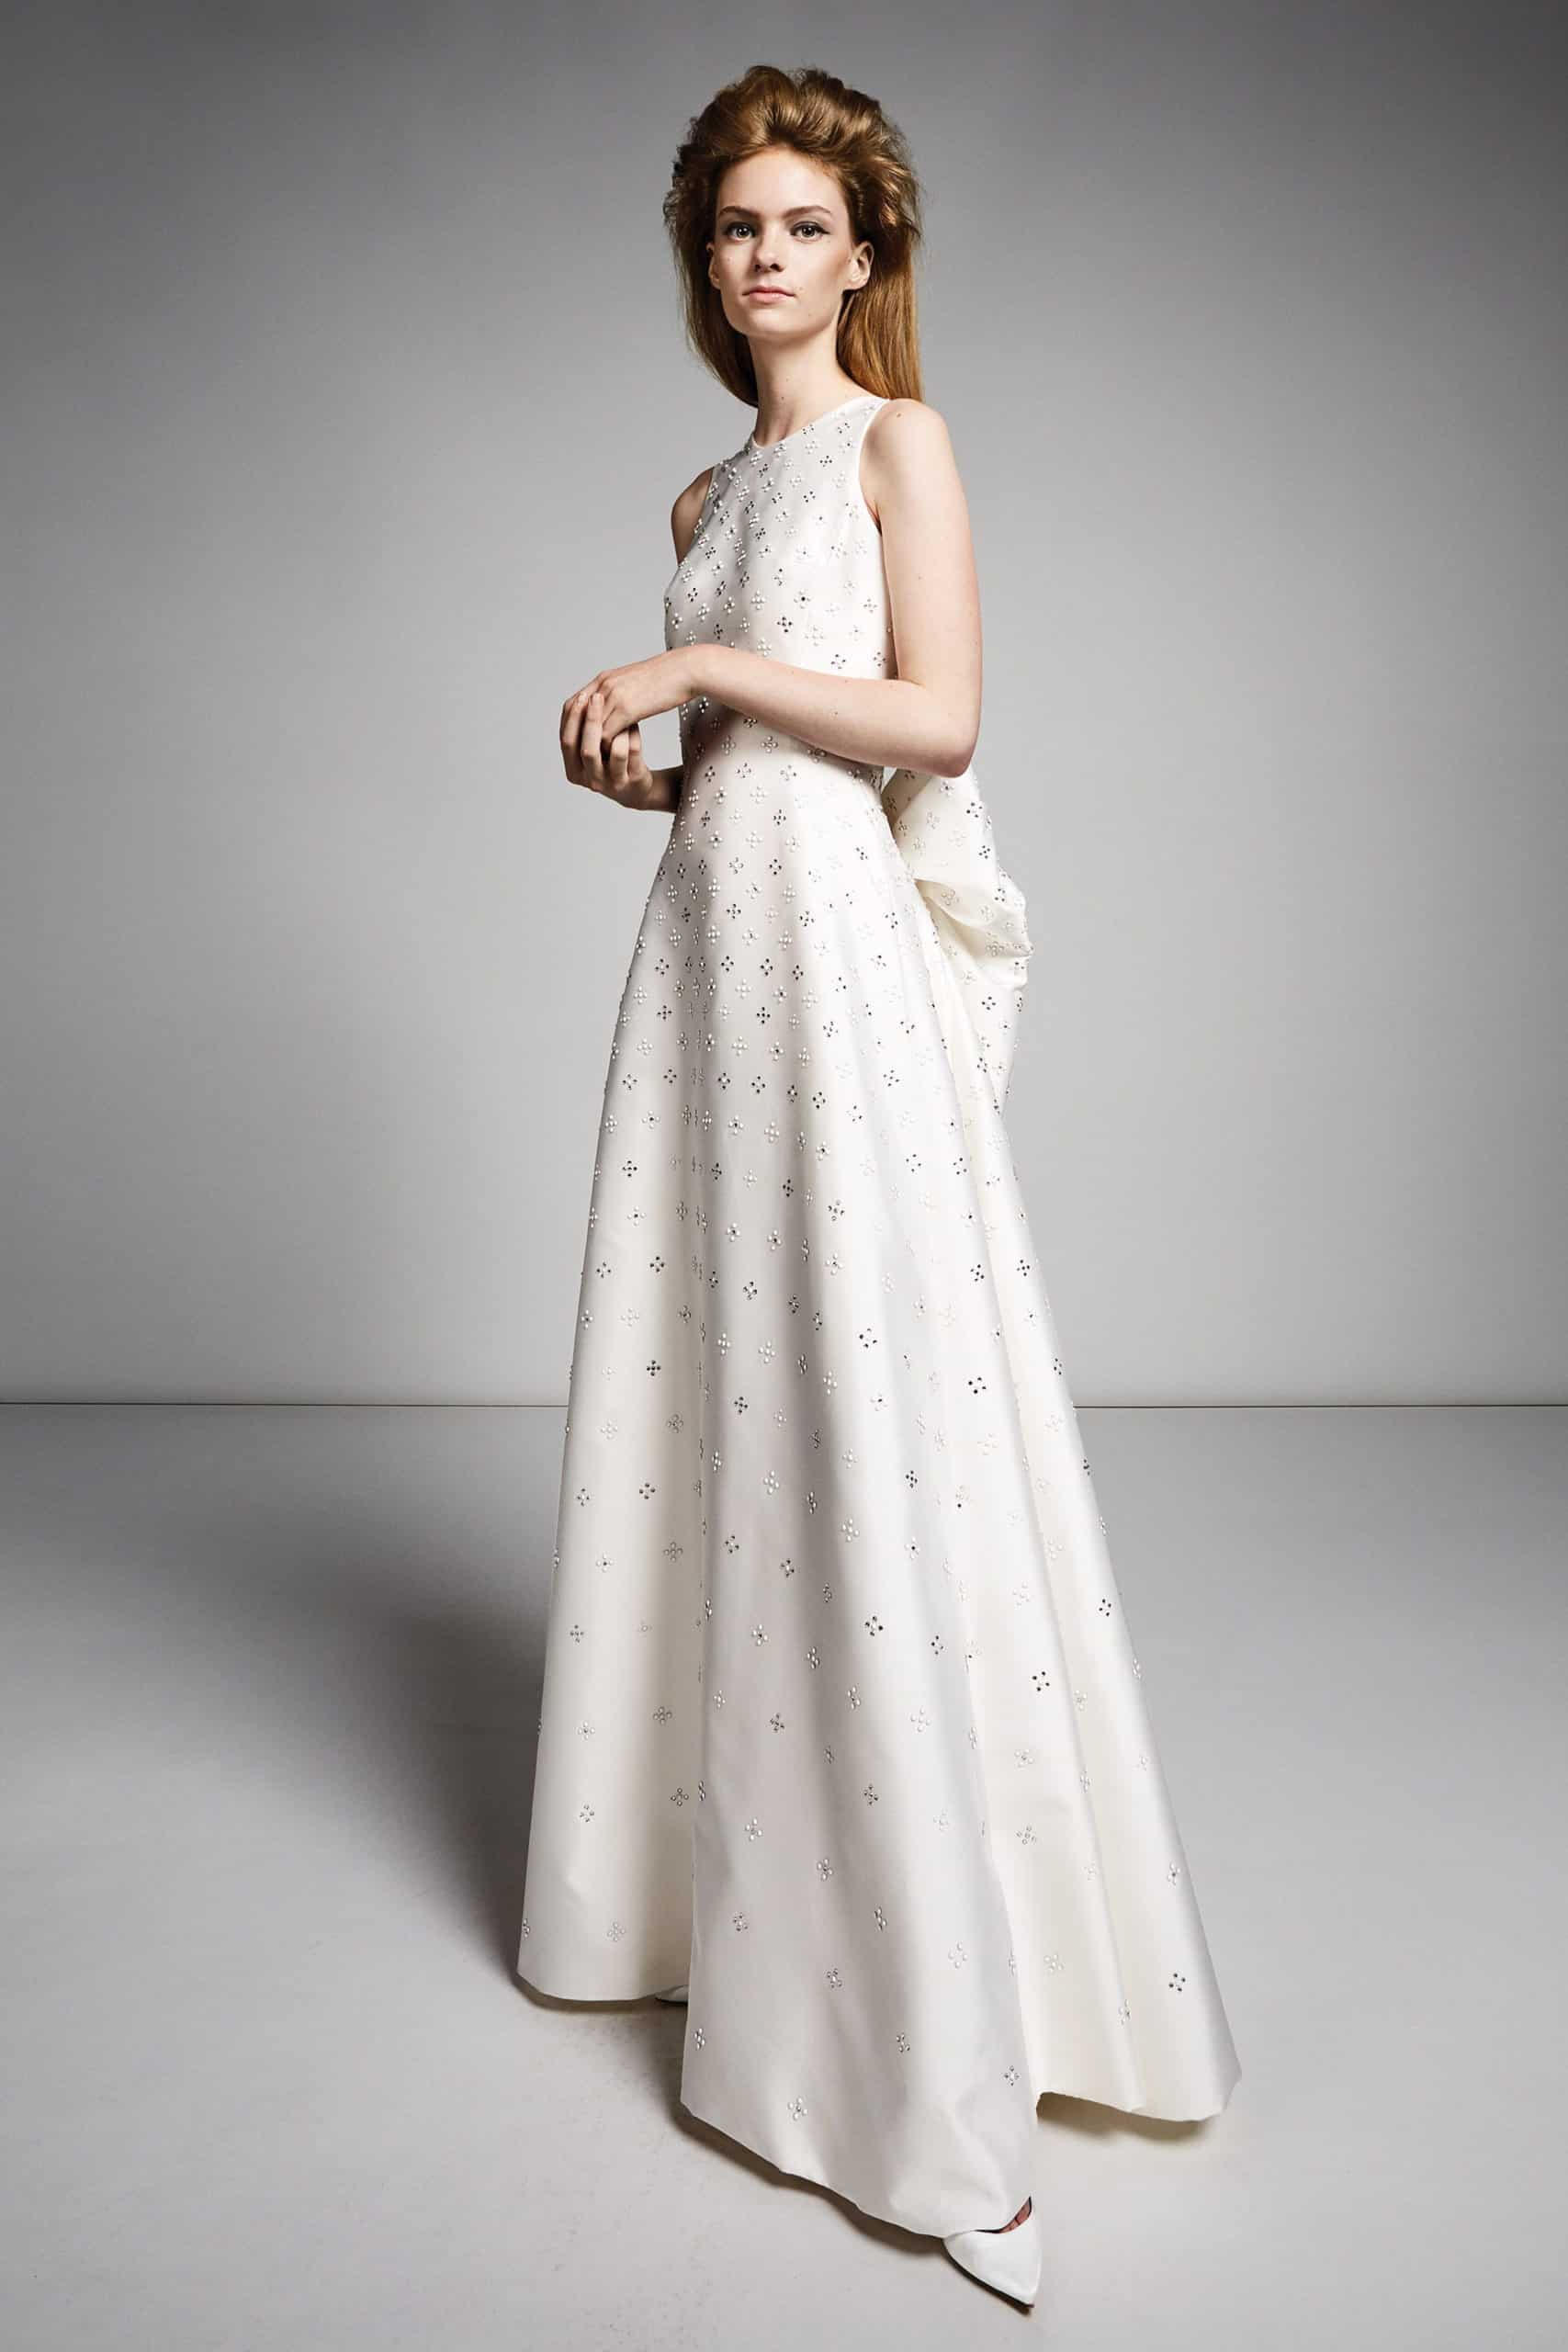 silk wedding dress with crystals and back bow by Viktor and Rolf